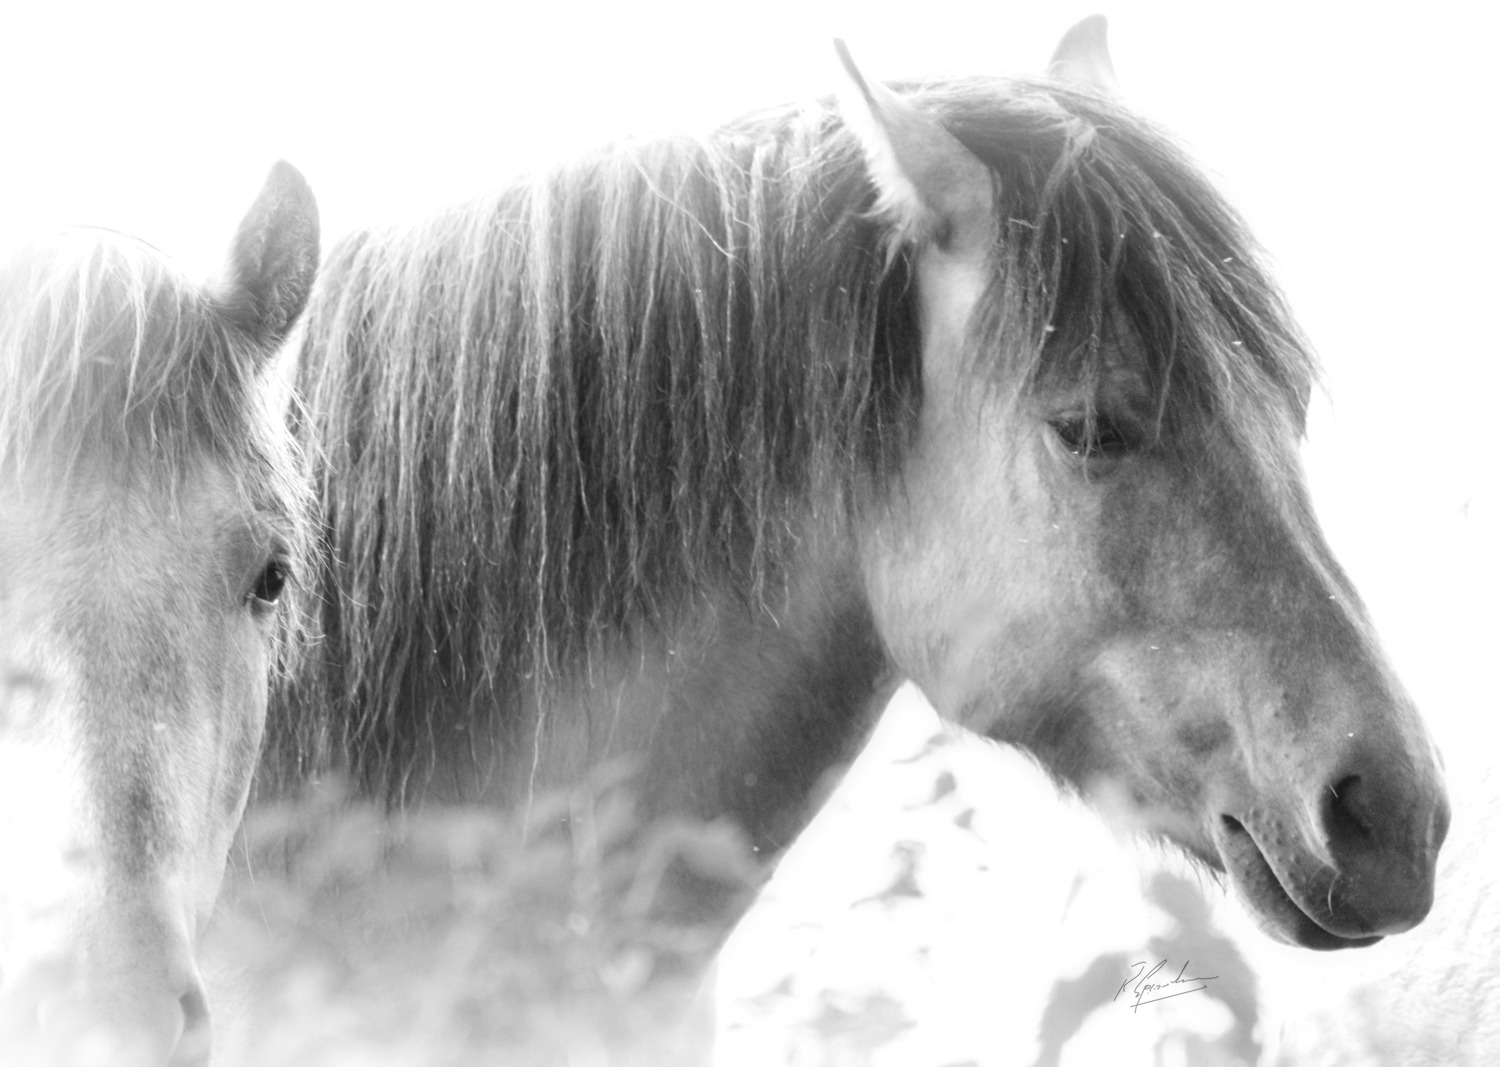 'Over Exposed Ponies'